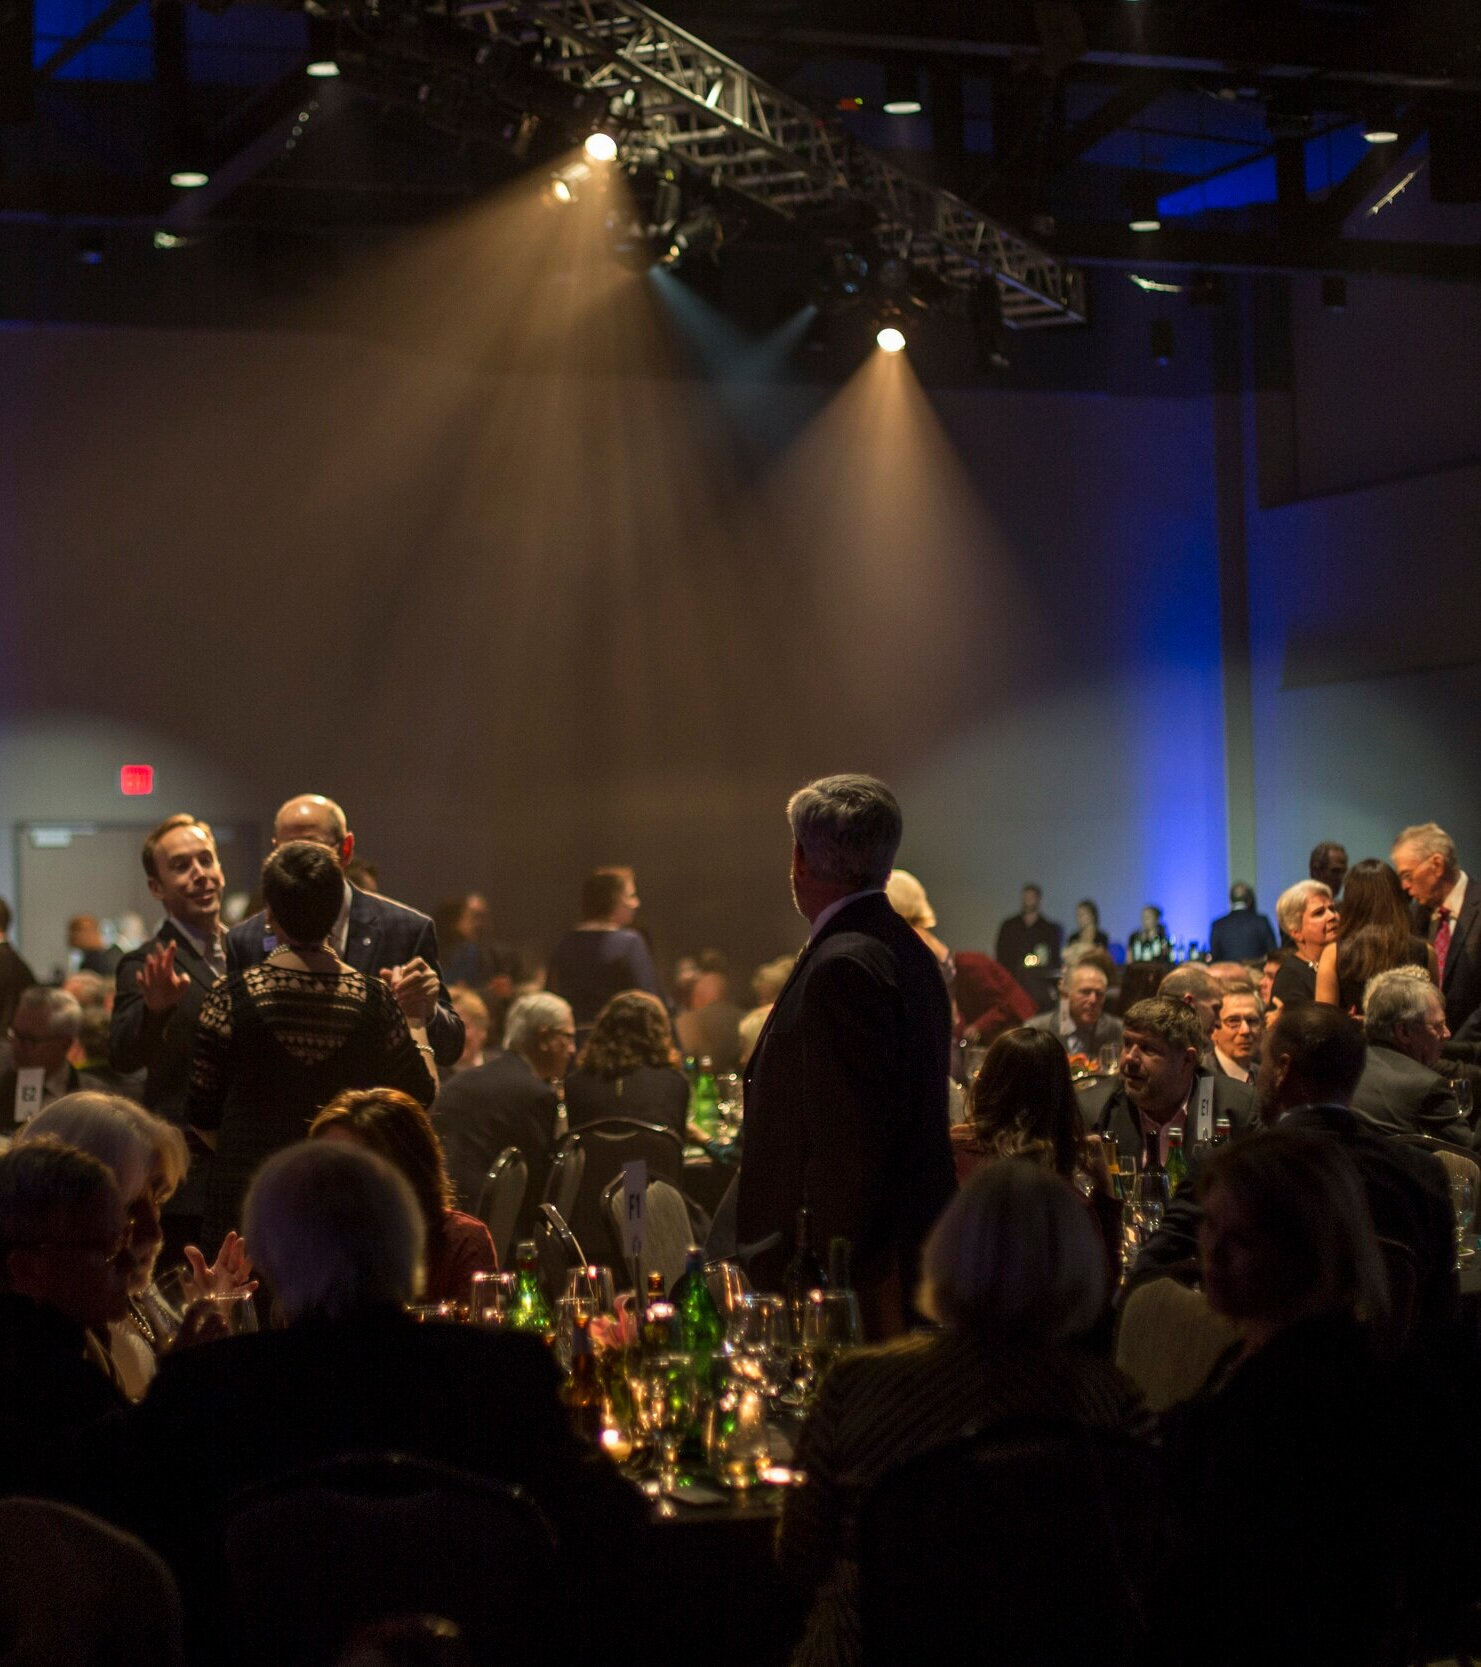 More than 400 guests attend the TheatreSquared Gala each year, enjoying an evening of entertainment, fine dining, drinks and conversation in celebration and support of education and access programs serving 30,000 Arkansans.